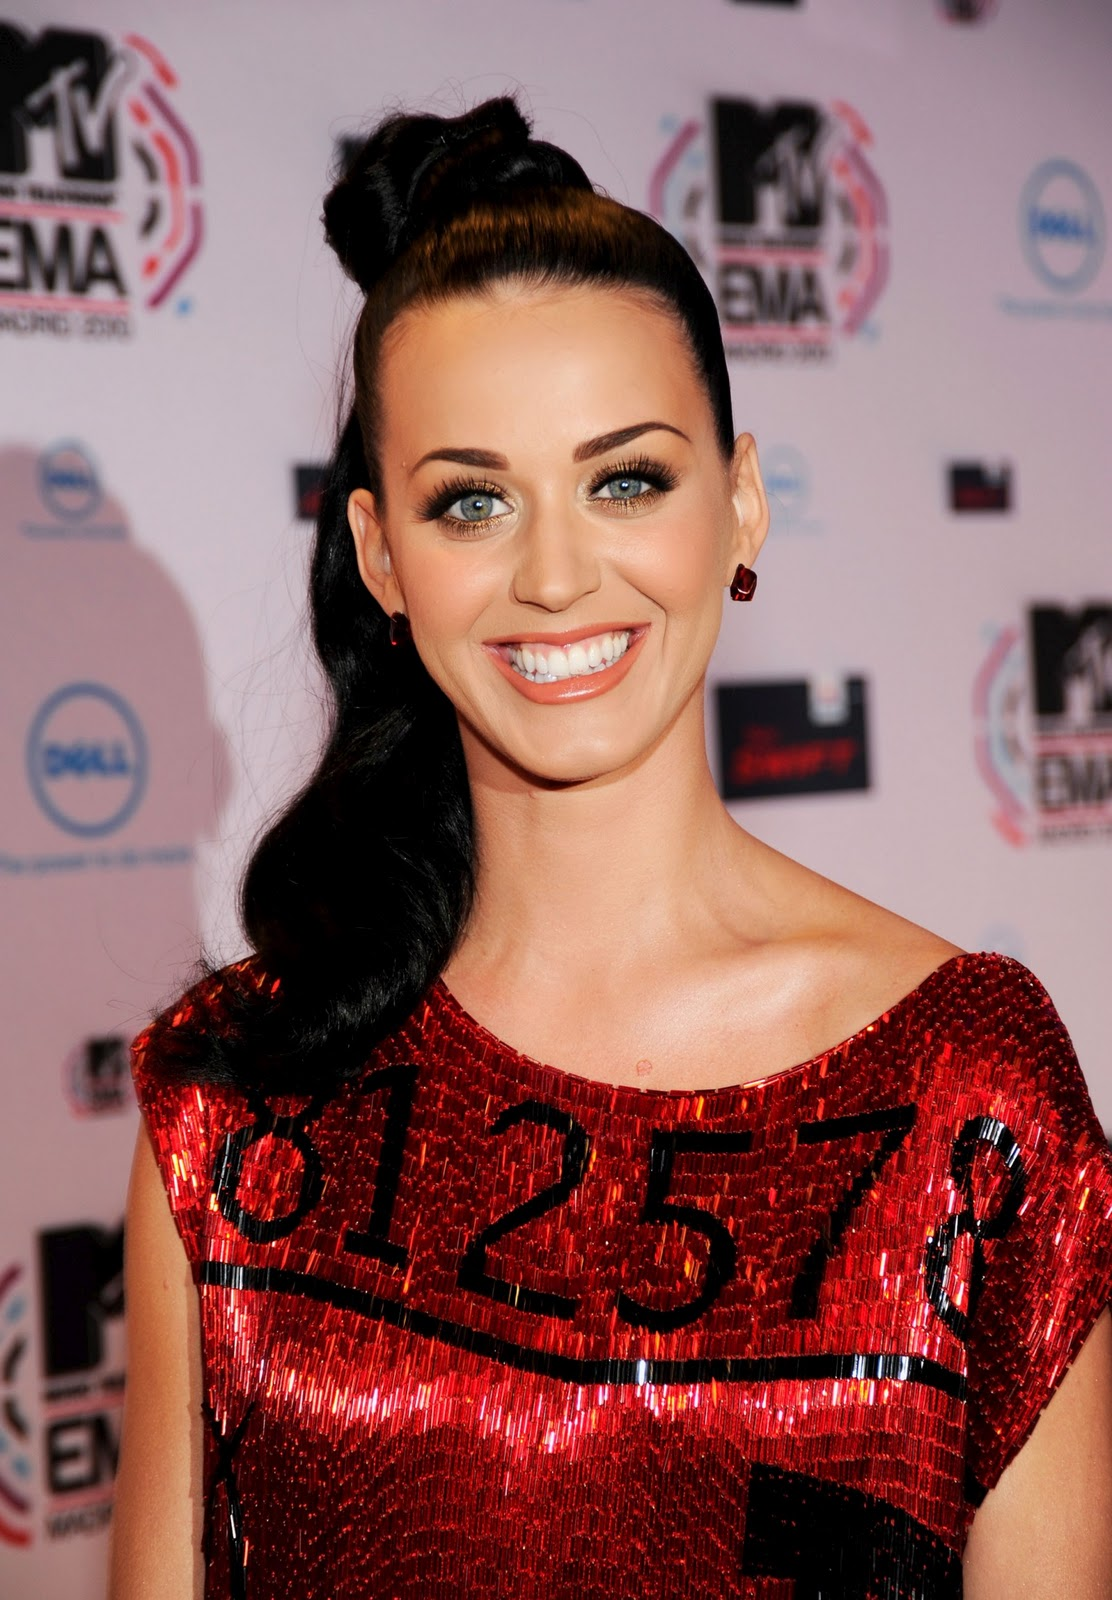 http://1.bp.blogspot.com/-LXSR034GFSw/TuW0gewK0GI/AAAAAAAABHw/-ZwA0IJaZy4/s1600/Katy-Perry-music-photos-pics-dresses-pictures-lyrics+%25281%2529.jpg